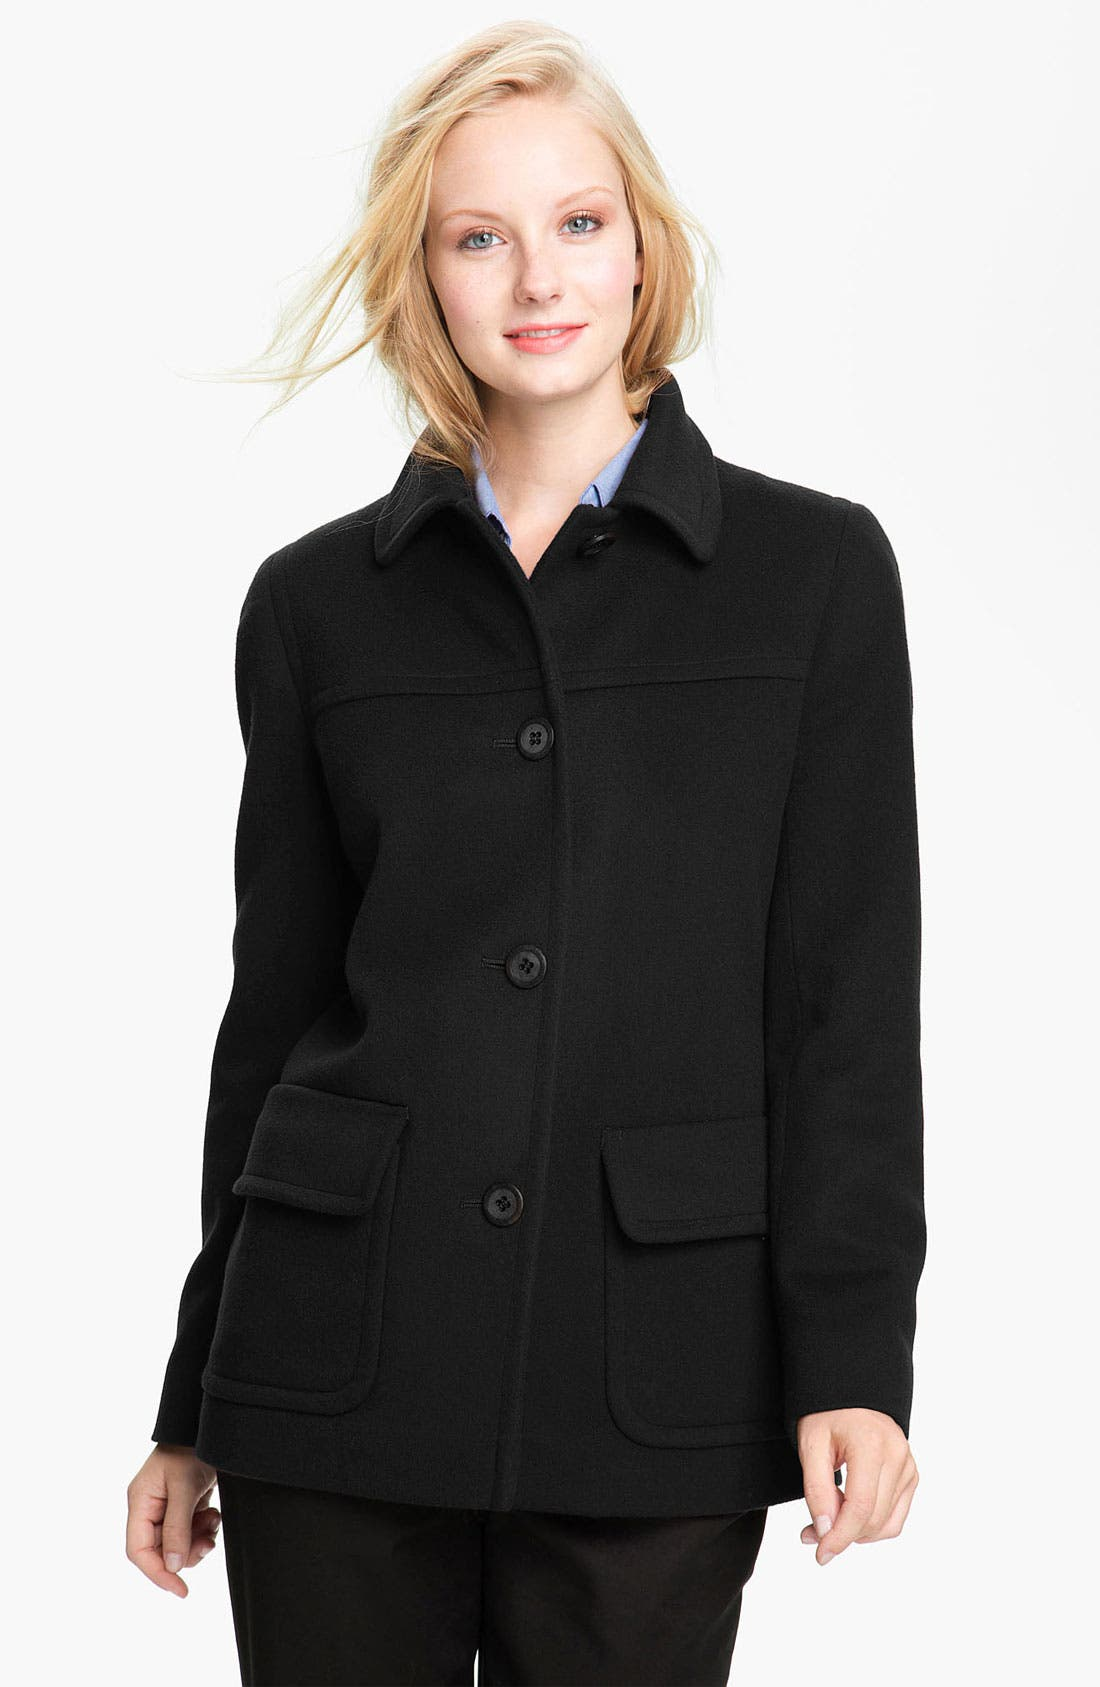 Alternate Image 1 Selected - Fleurette Single Breasted Wool Jacket (Petite)